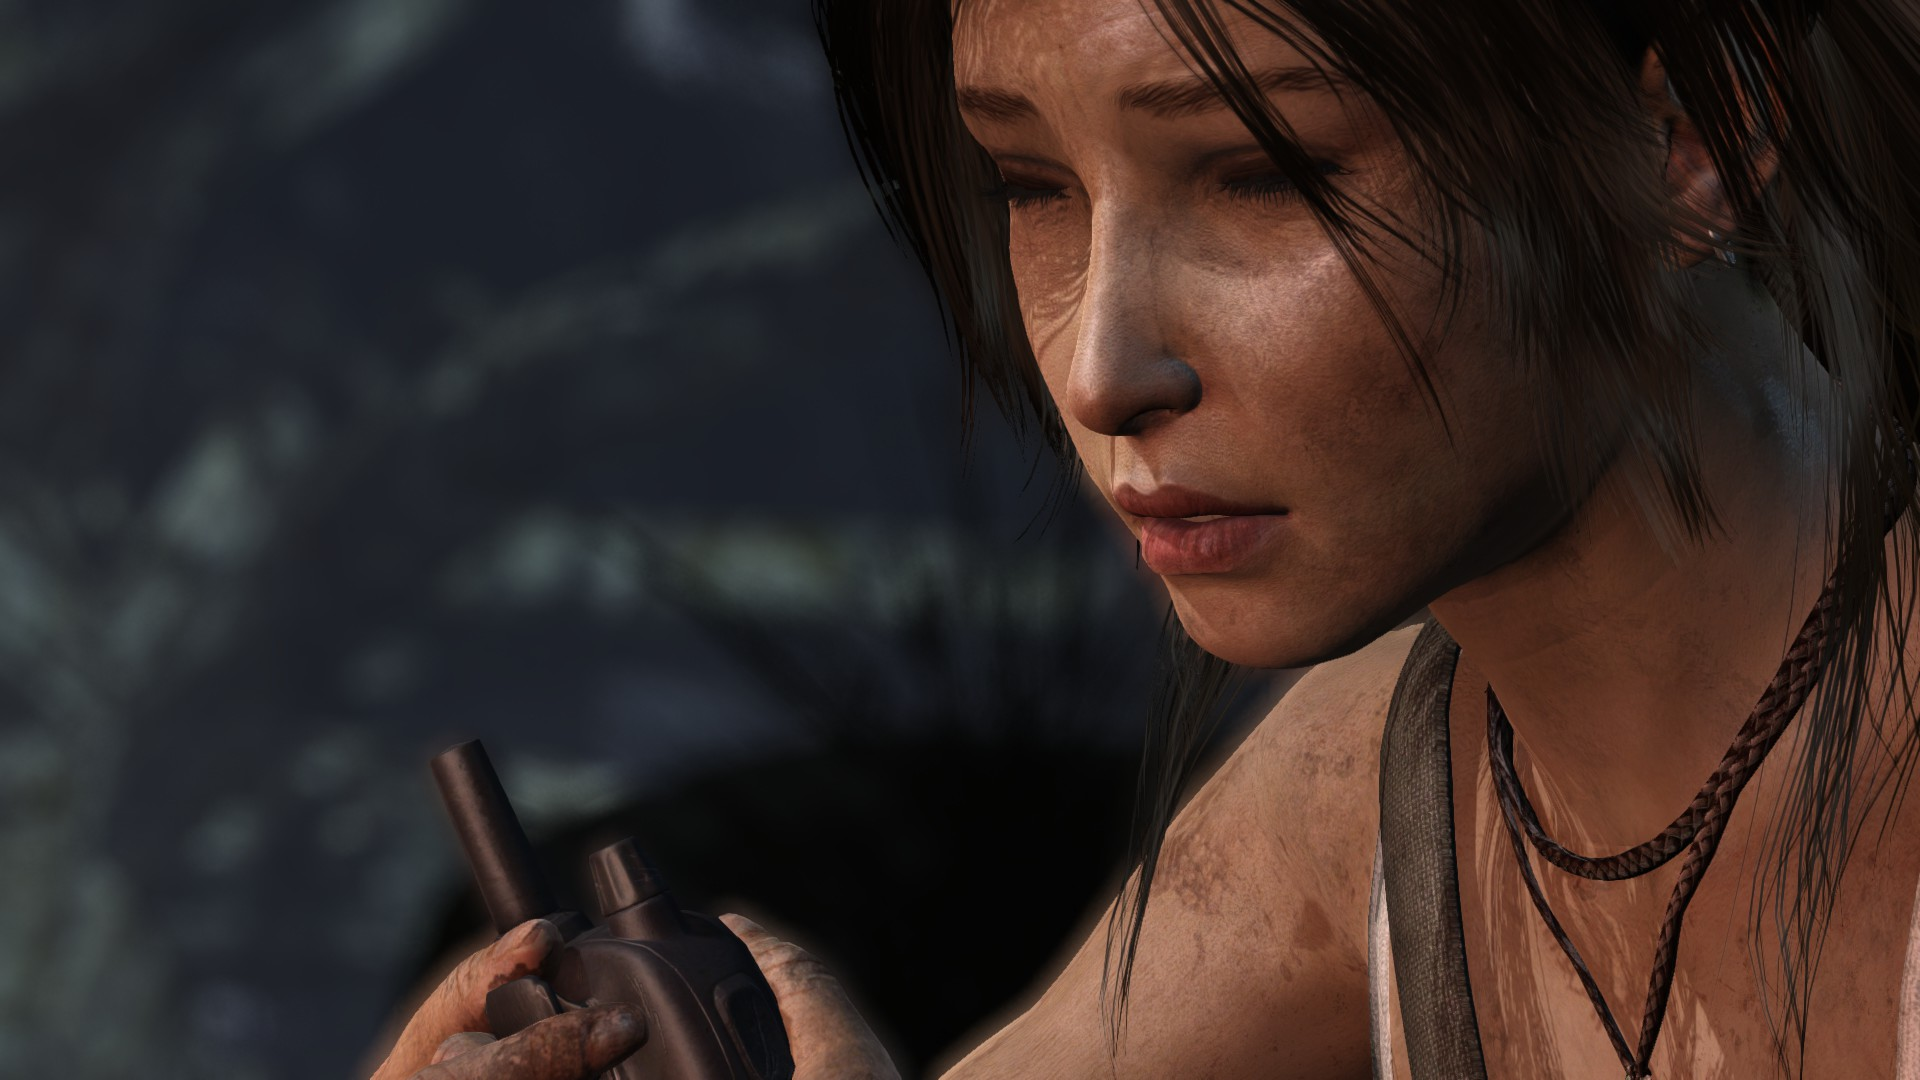 Download tombraider 13 nude patch anime pic